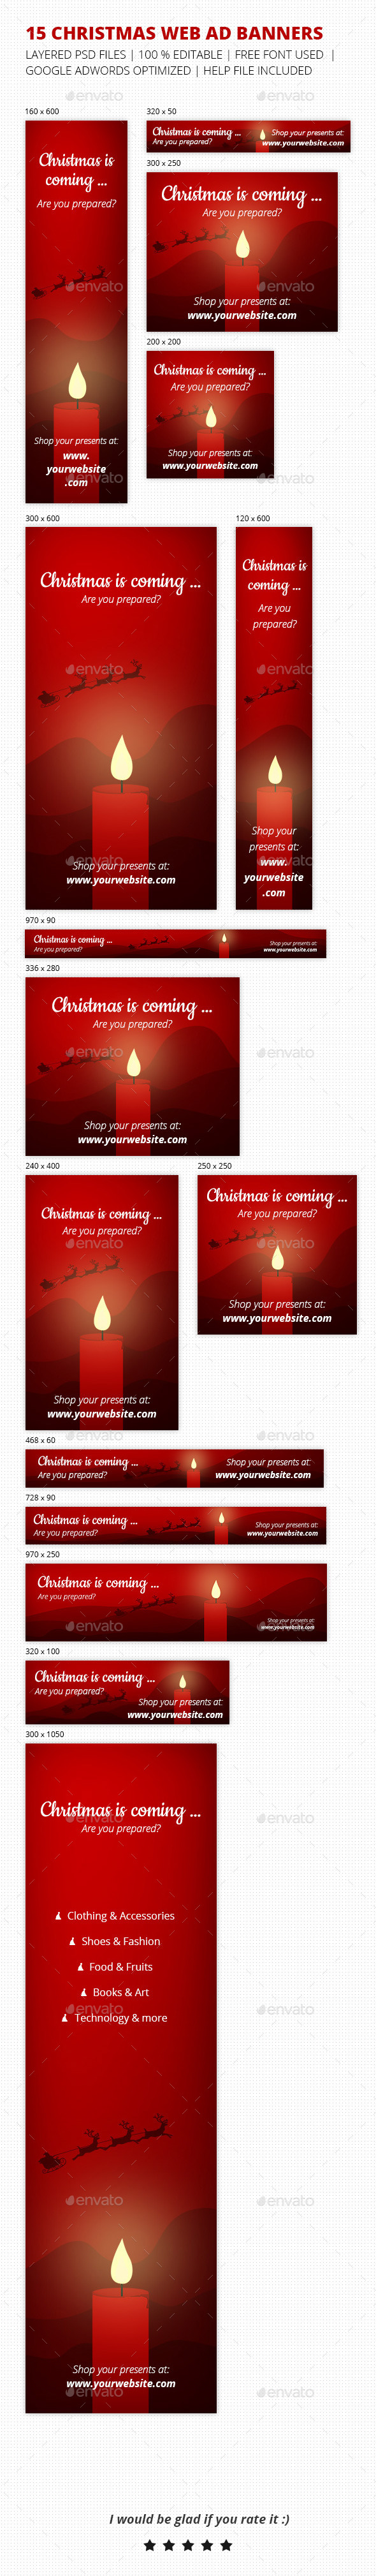 Christmas is Coming Banner Set - Banners & Ads Web Elements